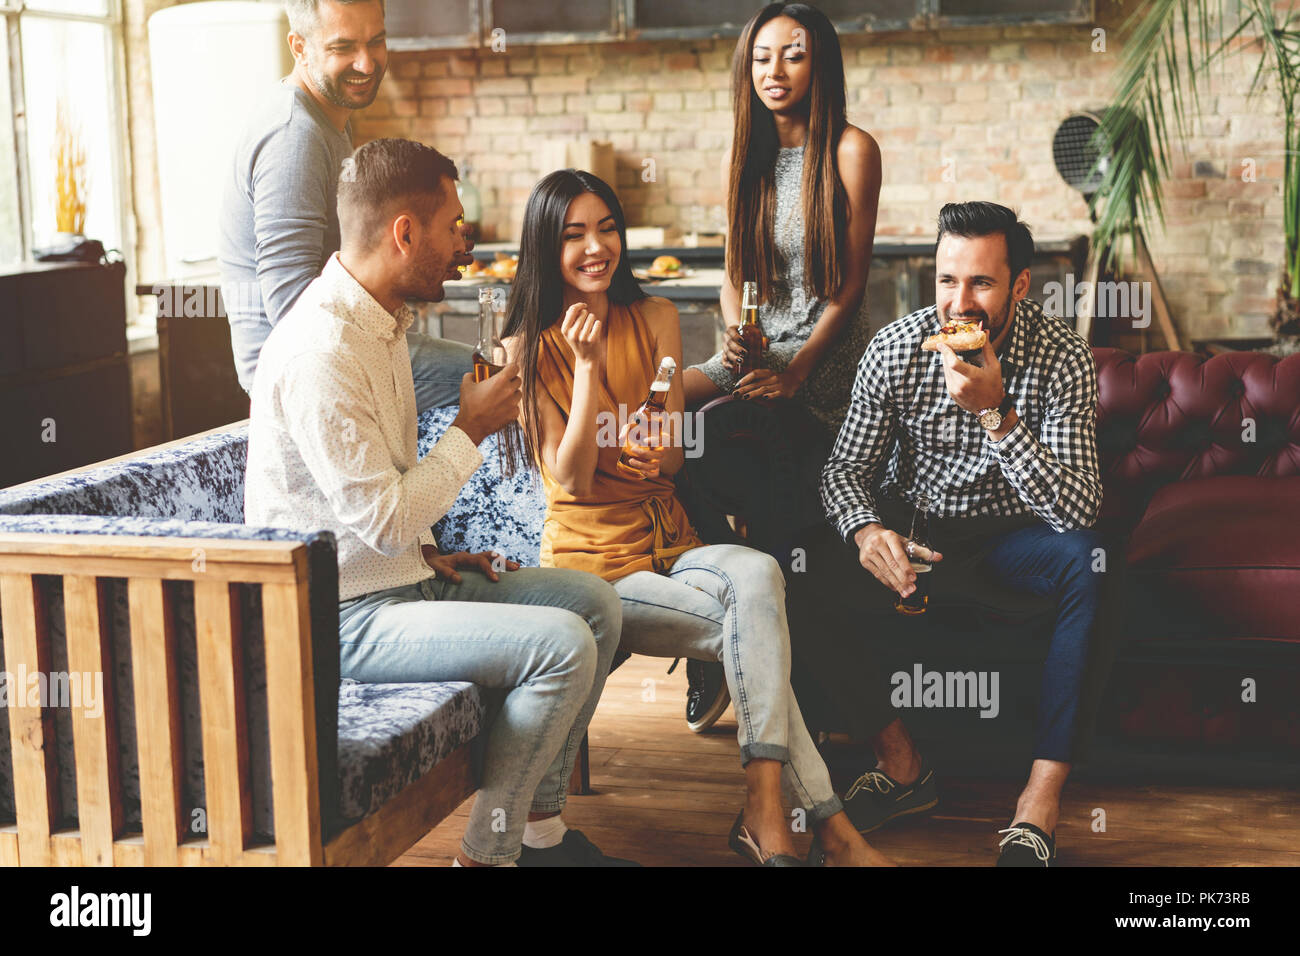 Spending great time with best friends. Group of cheerful young people enjoying food and drinks while spending nice time in cofortable chairs on the kitchen together. Stock Photo